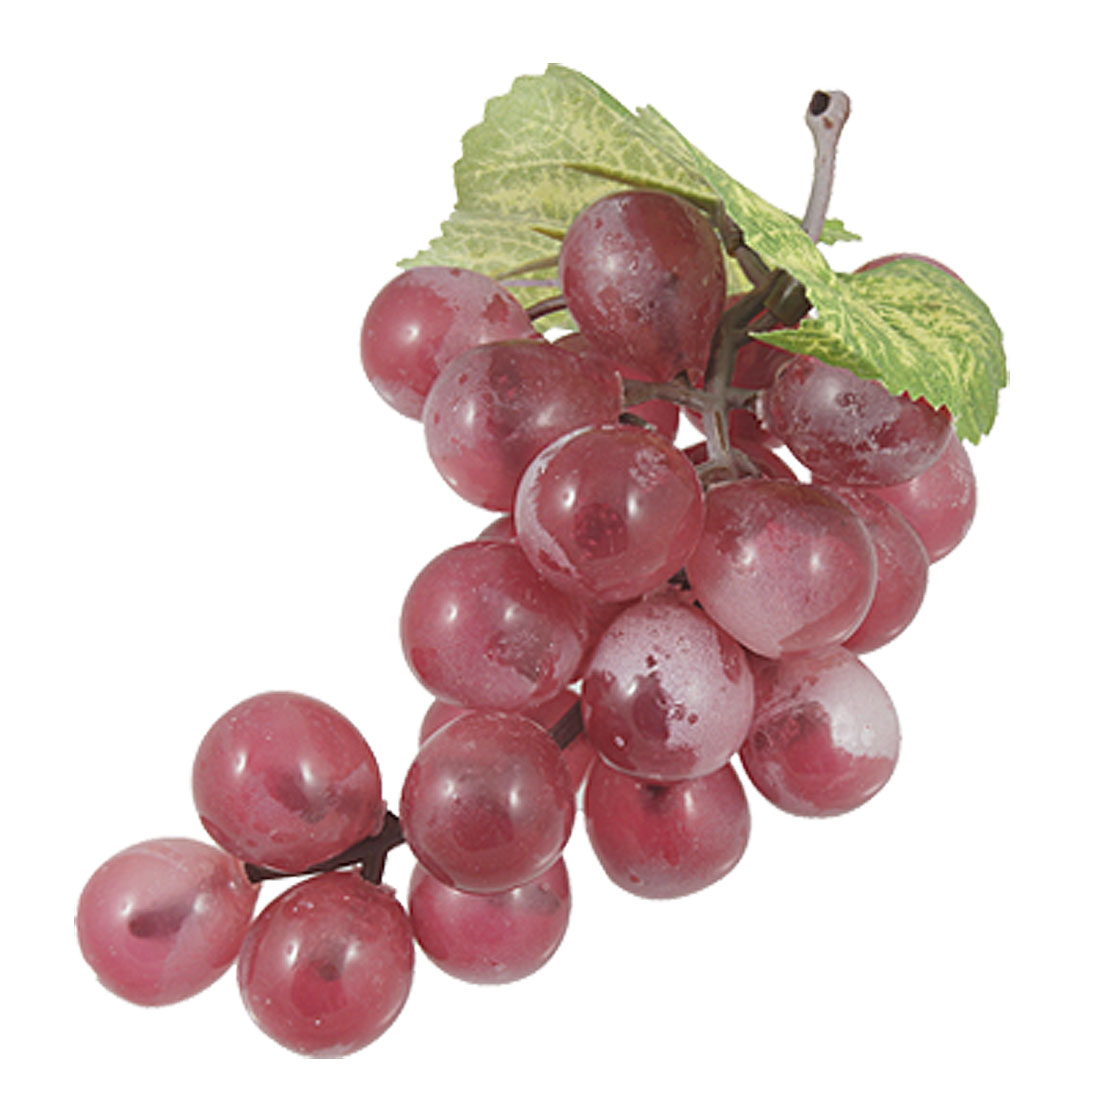 Artificial Plastic Red Grape Simulation Fruit Ornament Decor